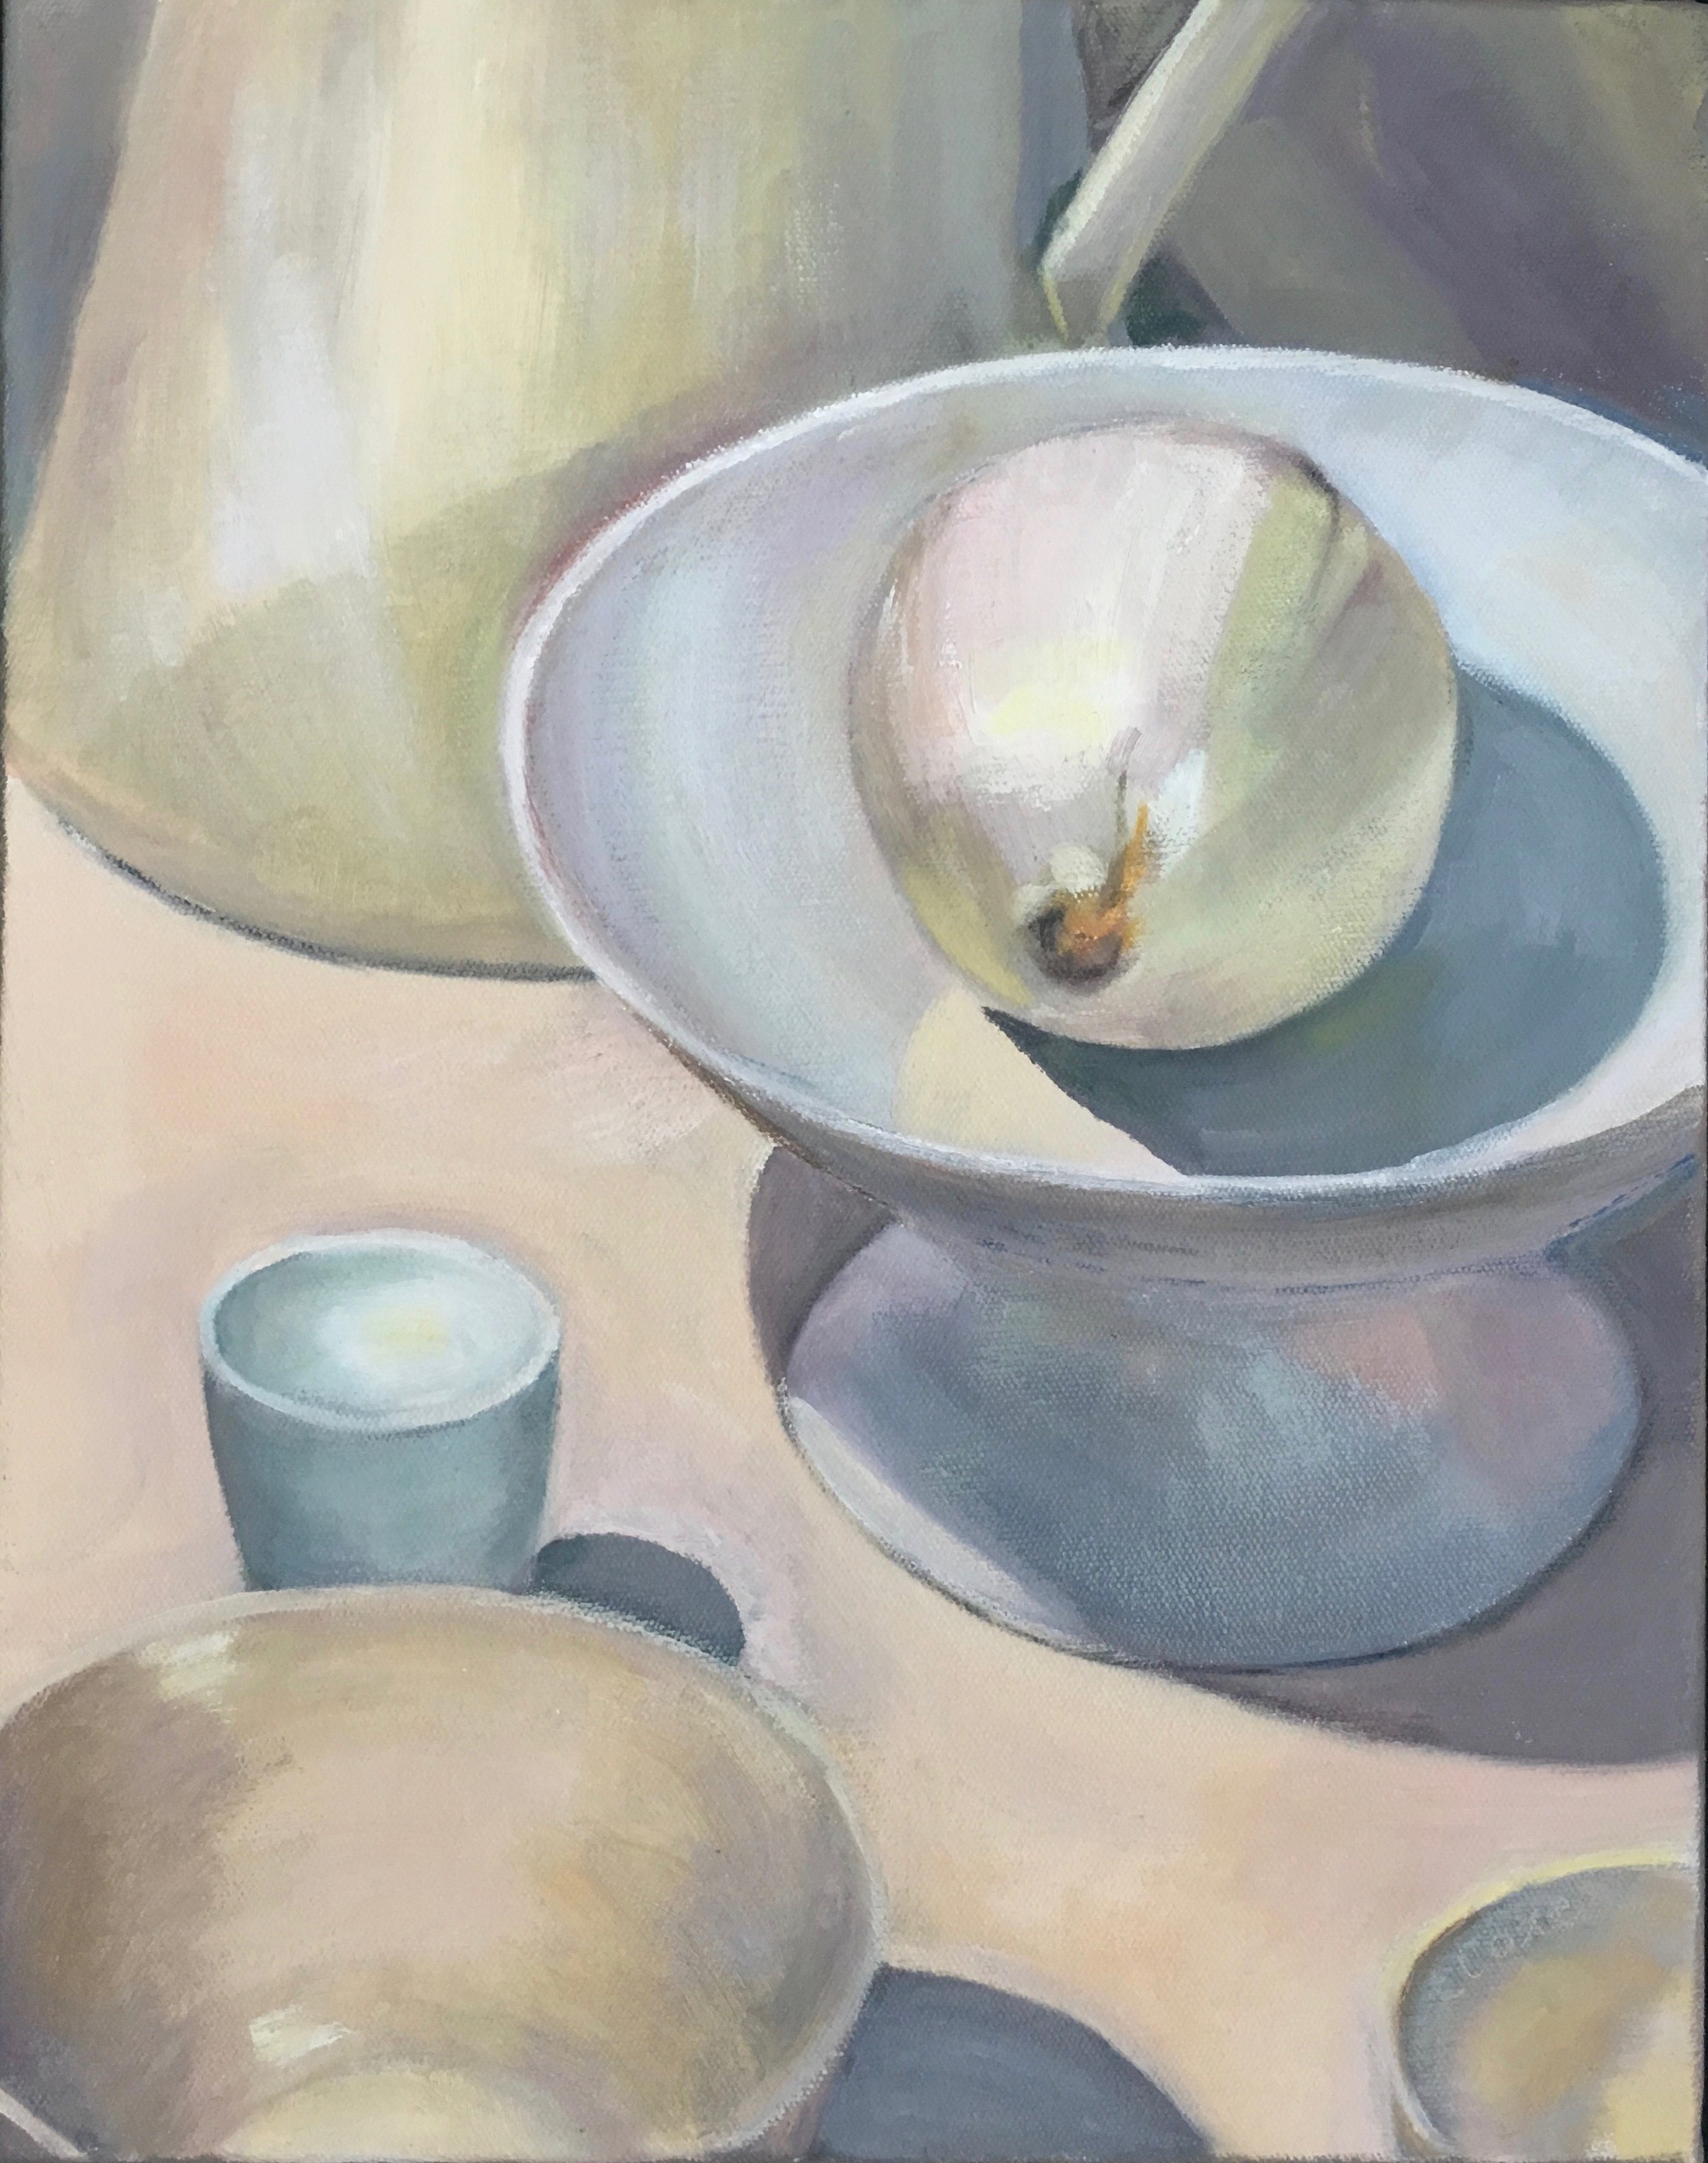 Onion and White Dishes